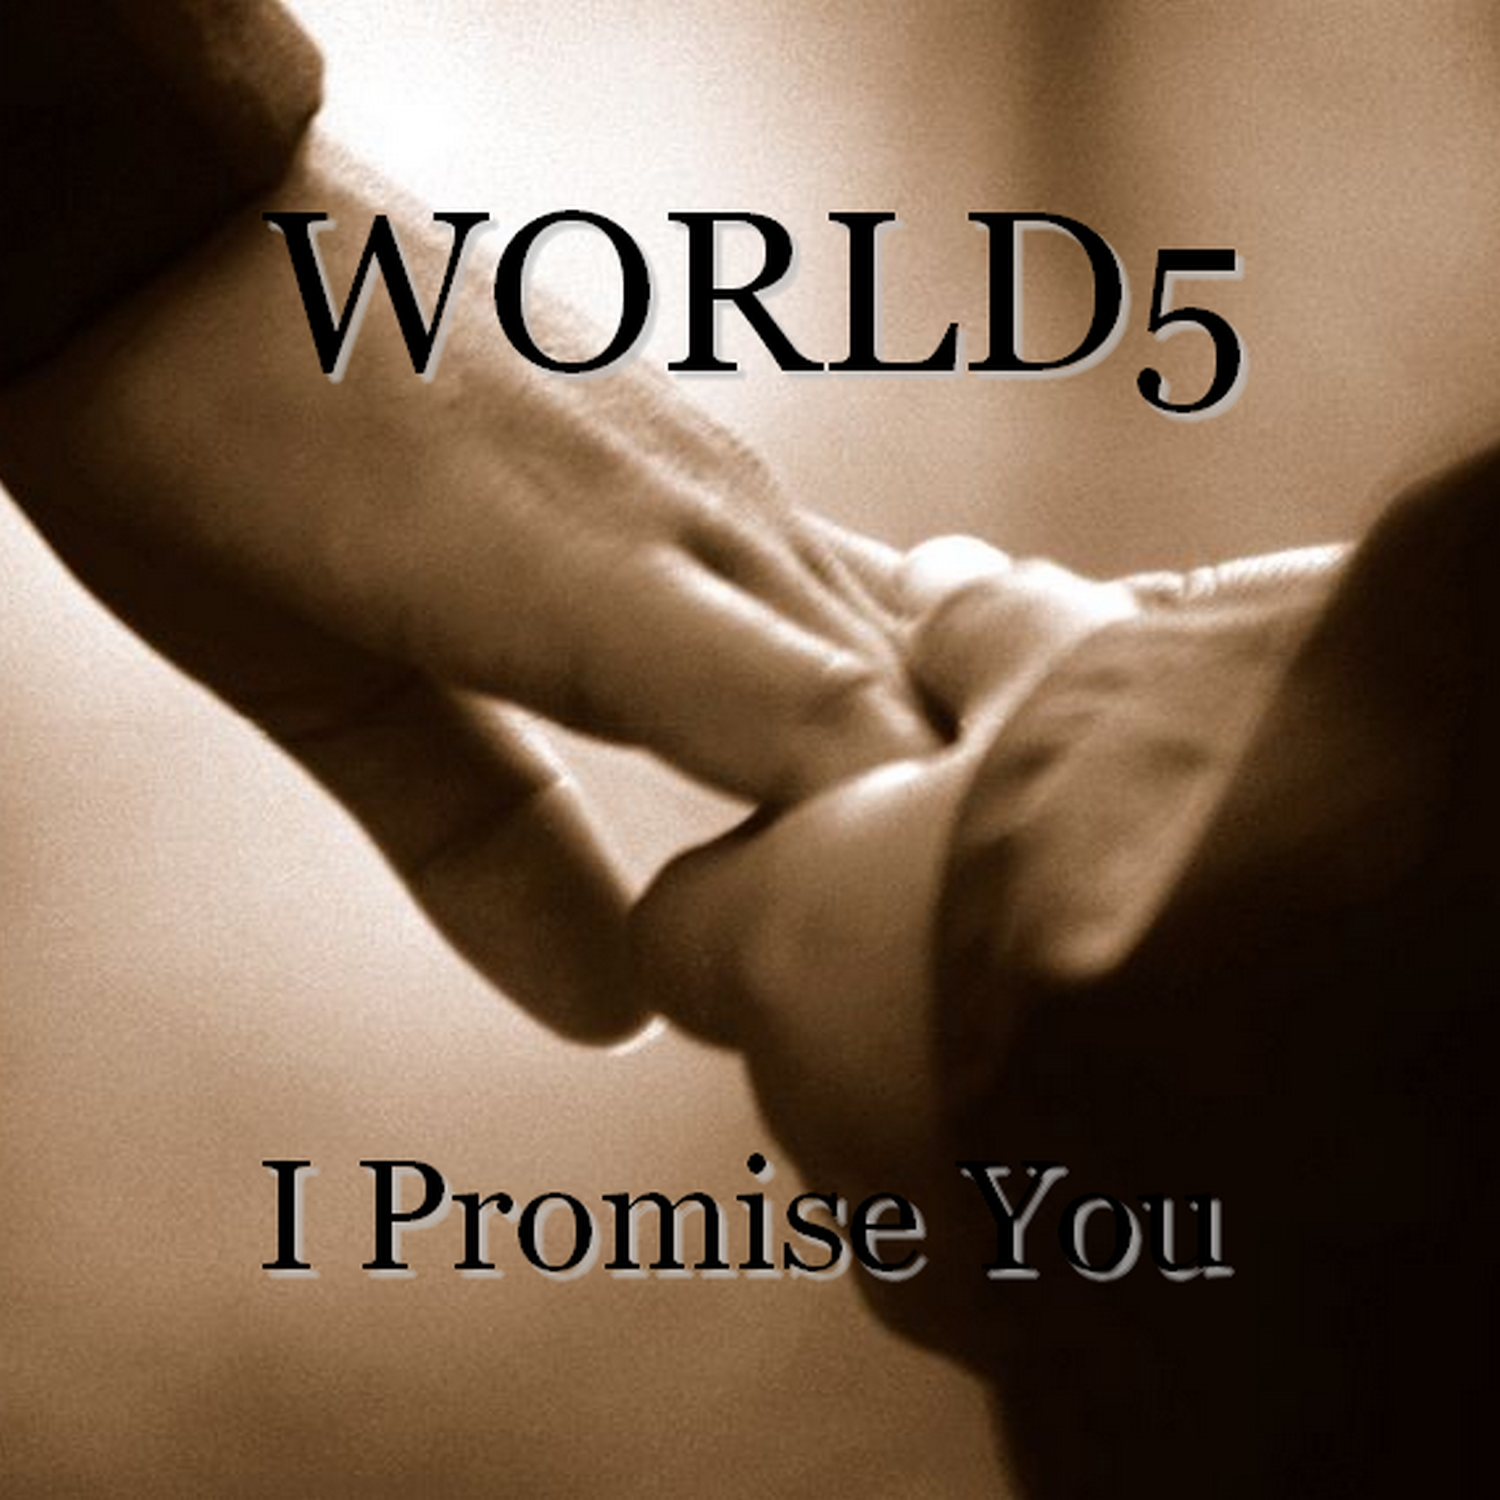 World5 - I Promise You (single)